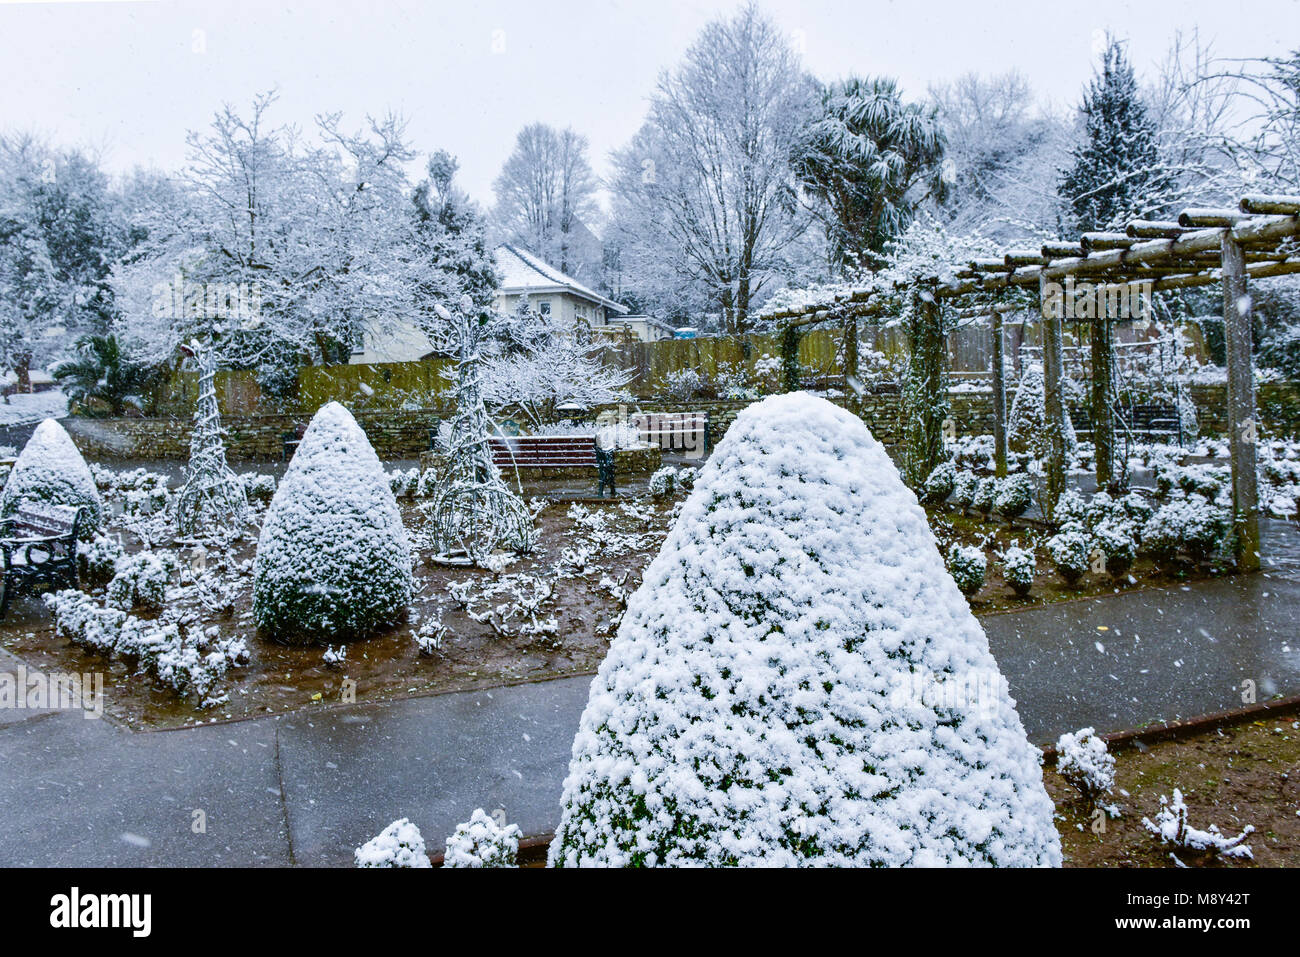 Snow falling over plants in the historic Trenance gardens in Newquay Cornwall. - Stock Image